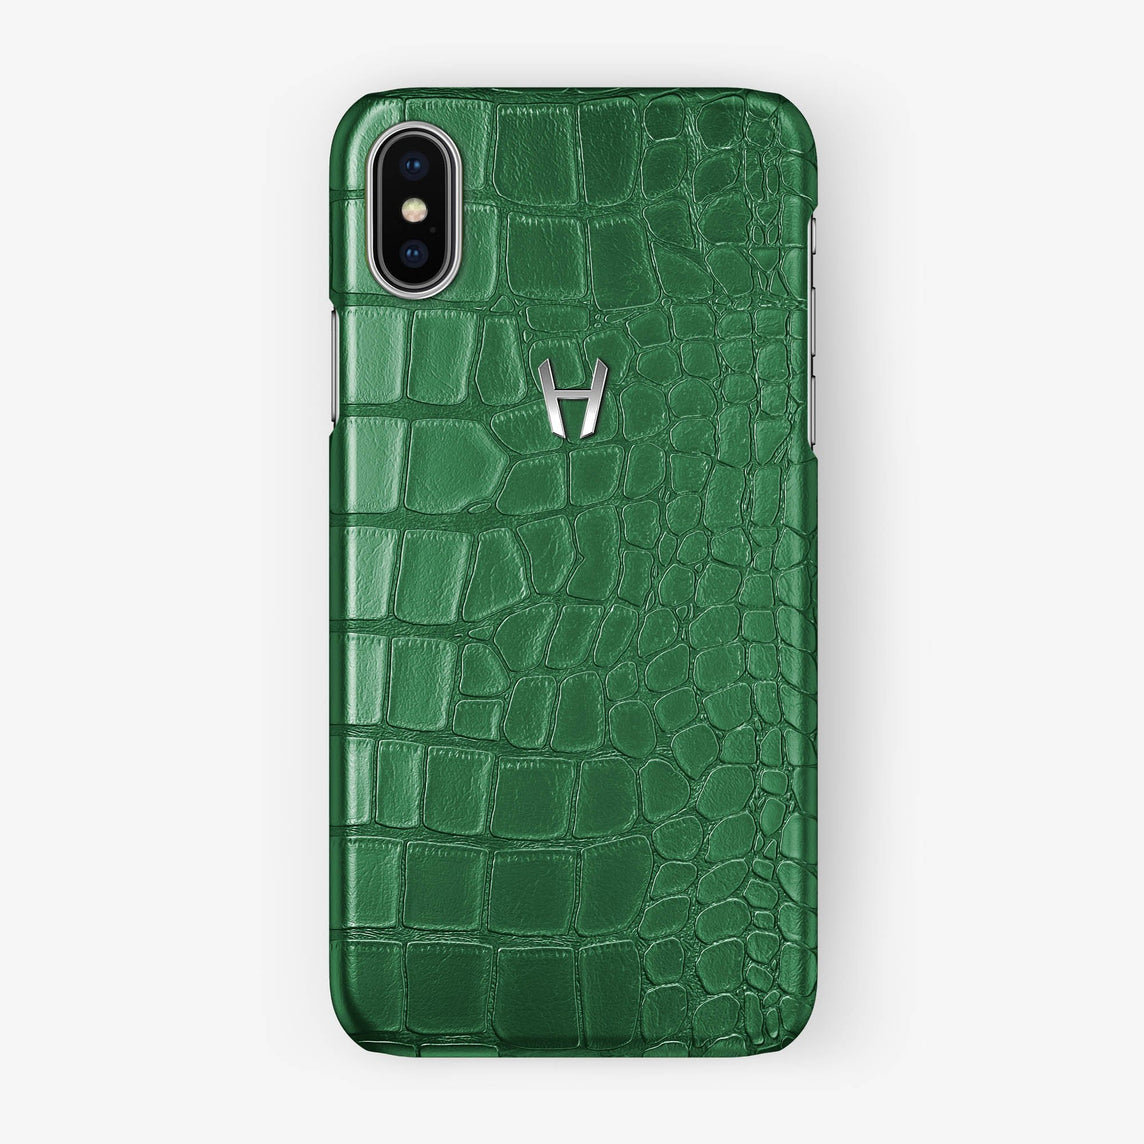 Alligator Case iPhone X/Xs | Green - Stainless Steel - Hadoro